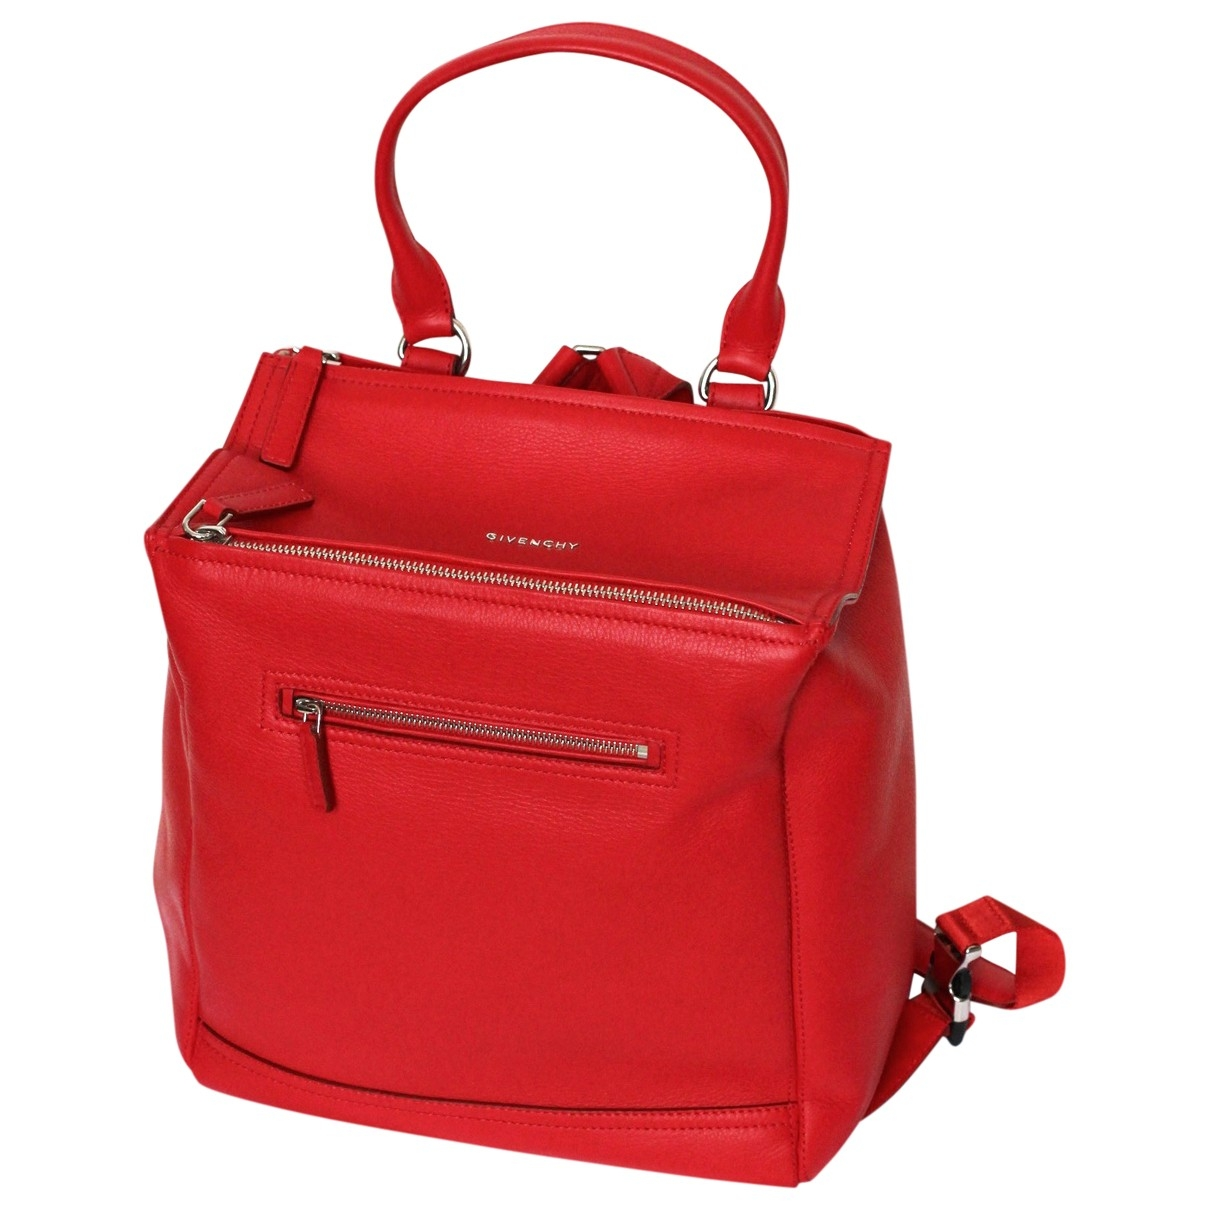 Givenchy Pandora Box Red Leather backpack for Women \N